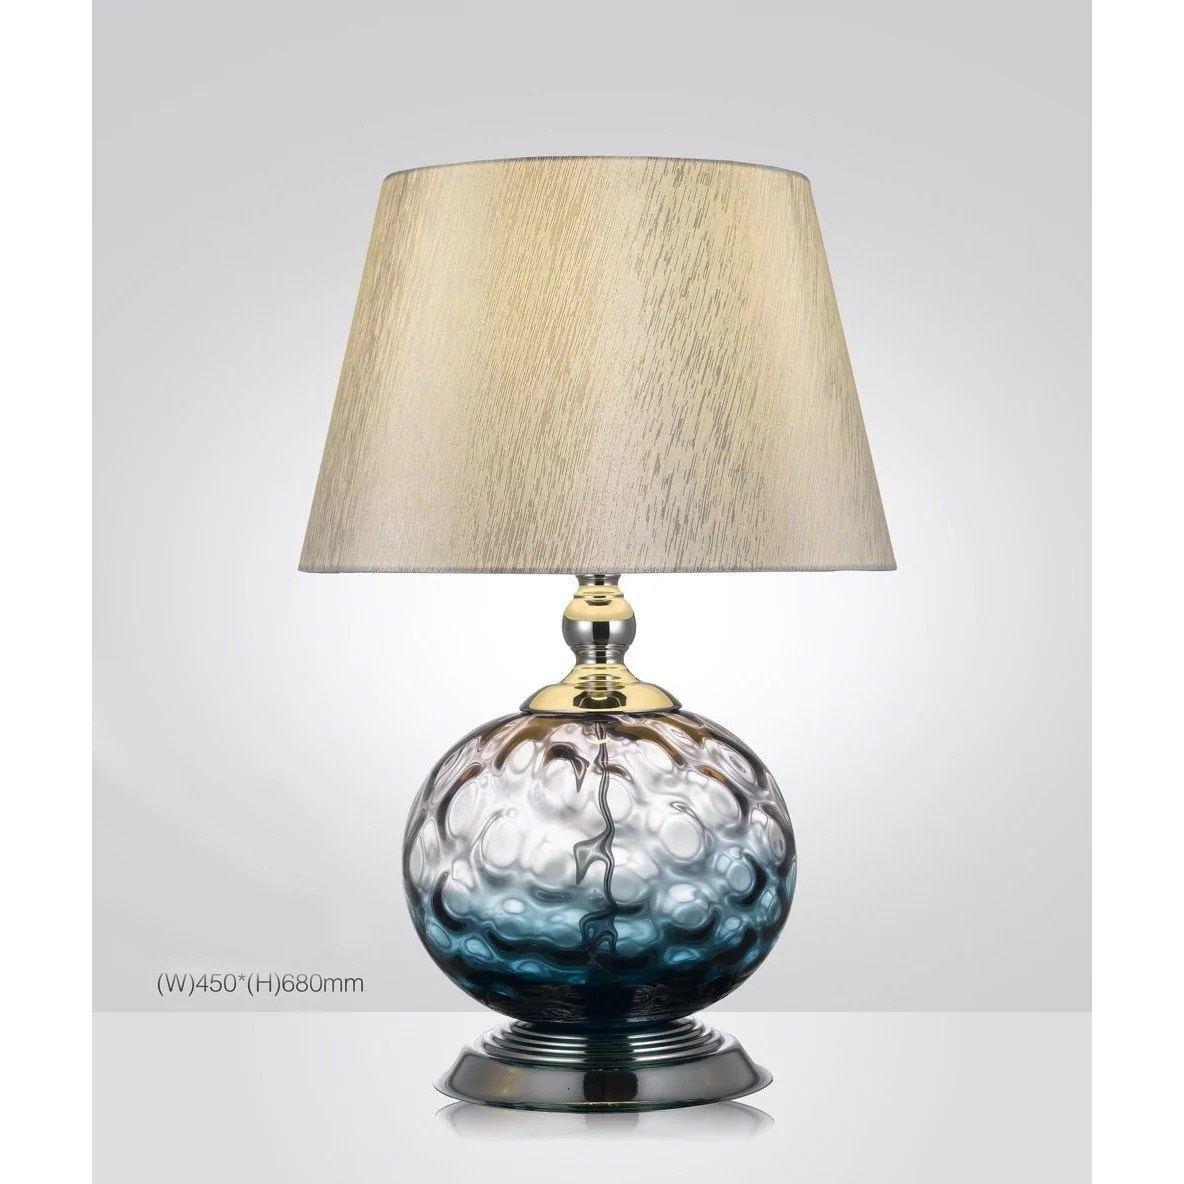 Urbanity Hand Crafted Blown Glass Table Lamp With Shade Italian Concept